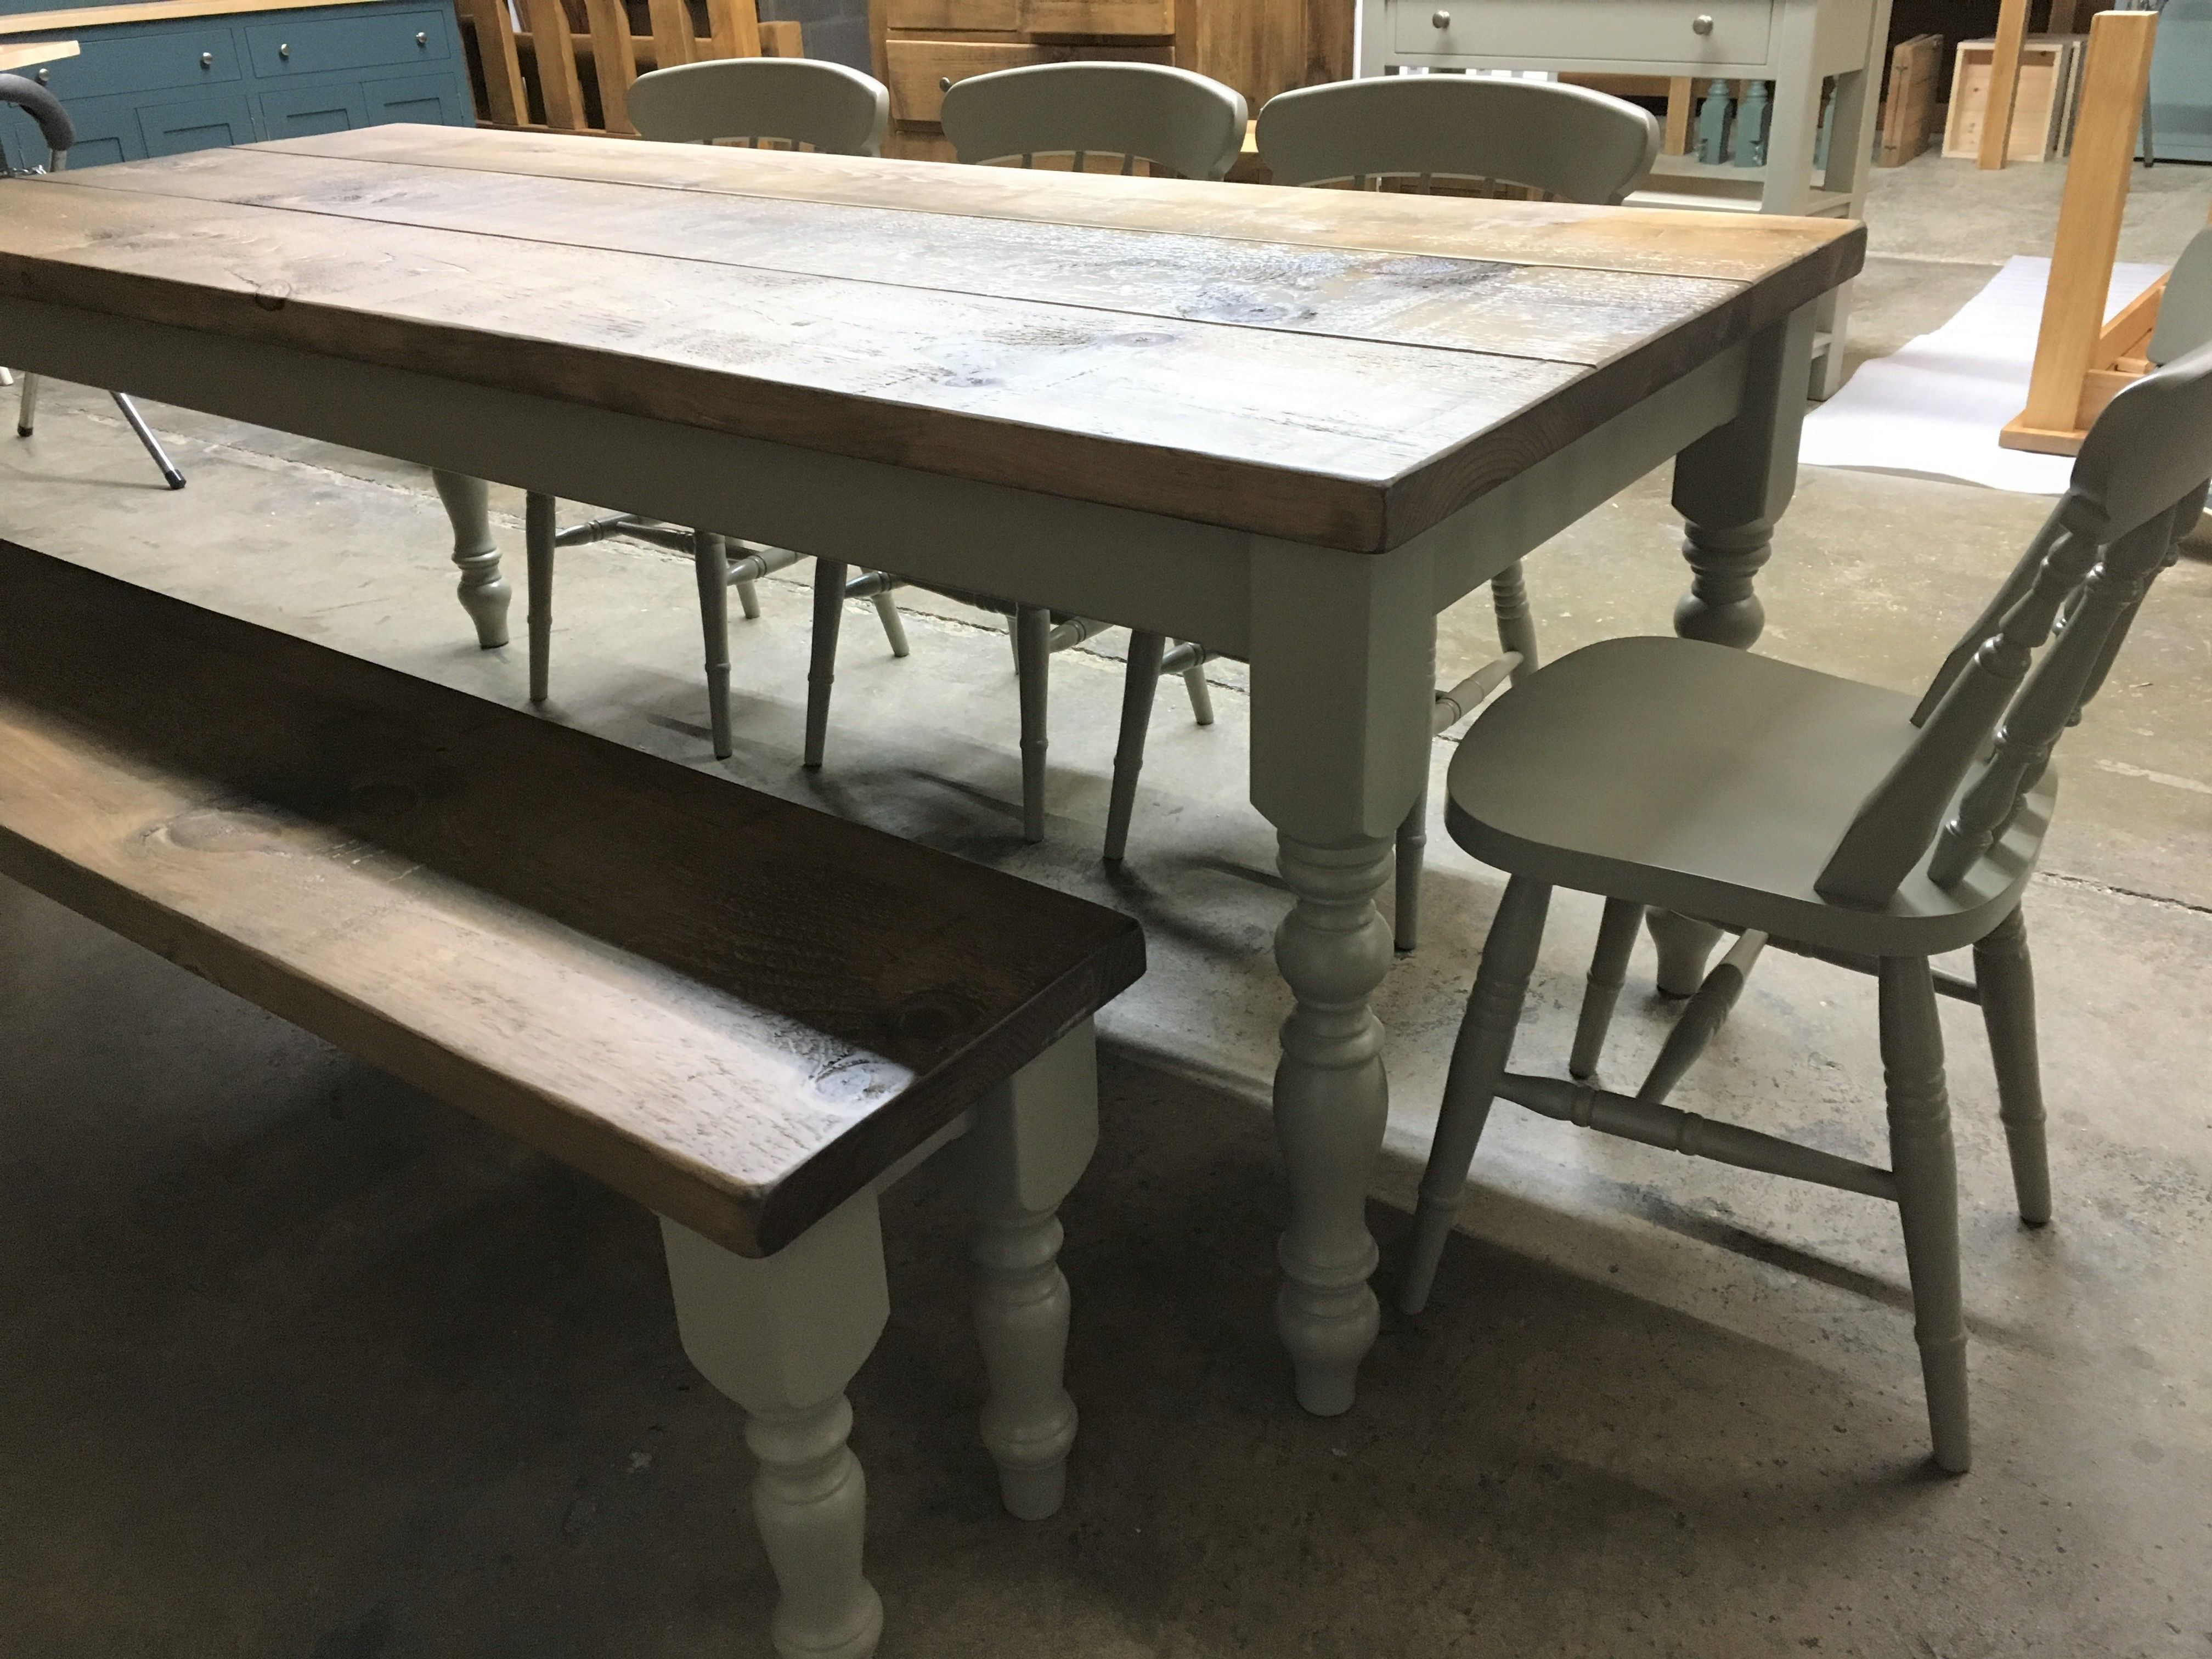 Farmhouse table and bench with Spindle back chairs all